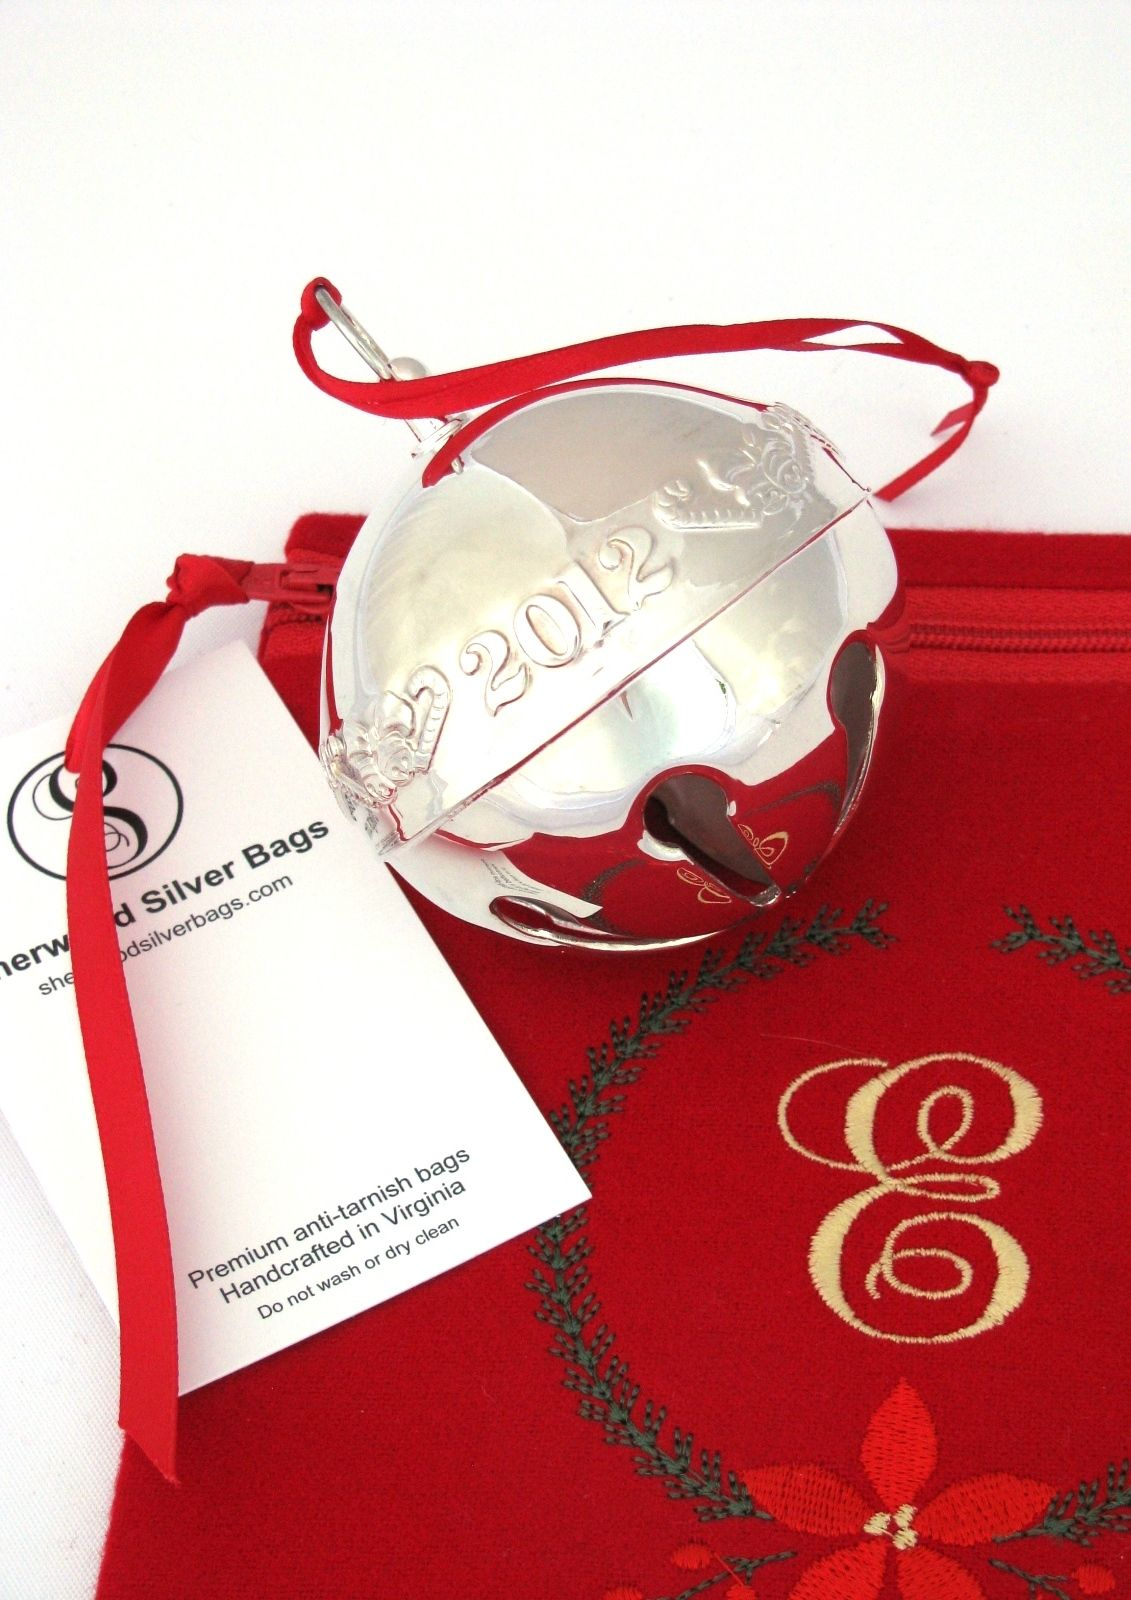 Anti Tarnish Bag For Silver Christmas Ornament Storage, Monogrammed Sterling  Silver Storage Bag For Holly Bell, Silver Bell